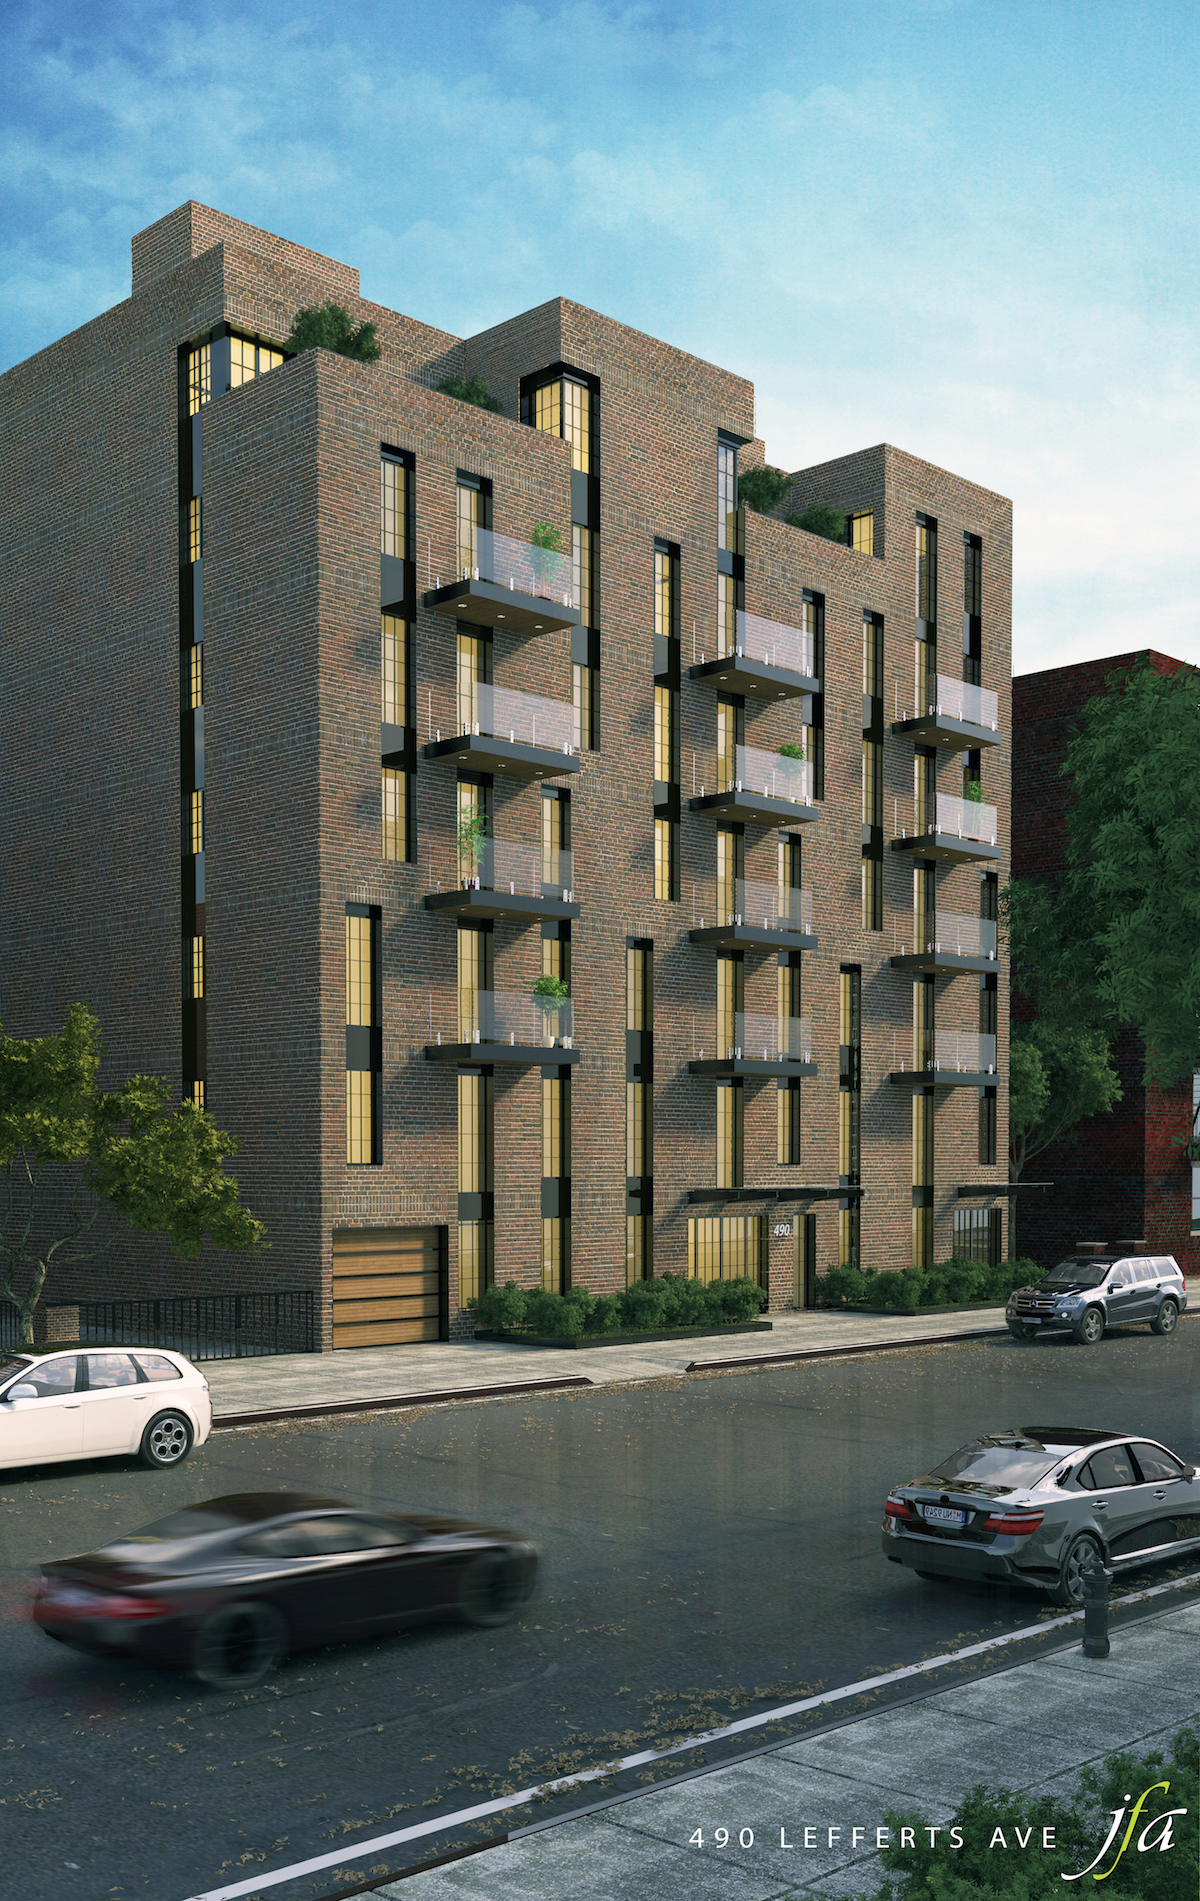 490 Lefferts Avenue, rendering by J Frankl Associates